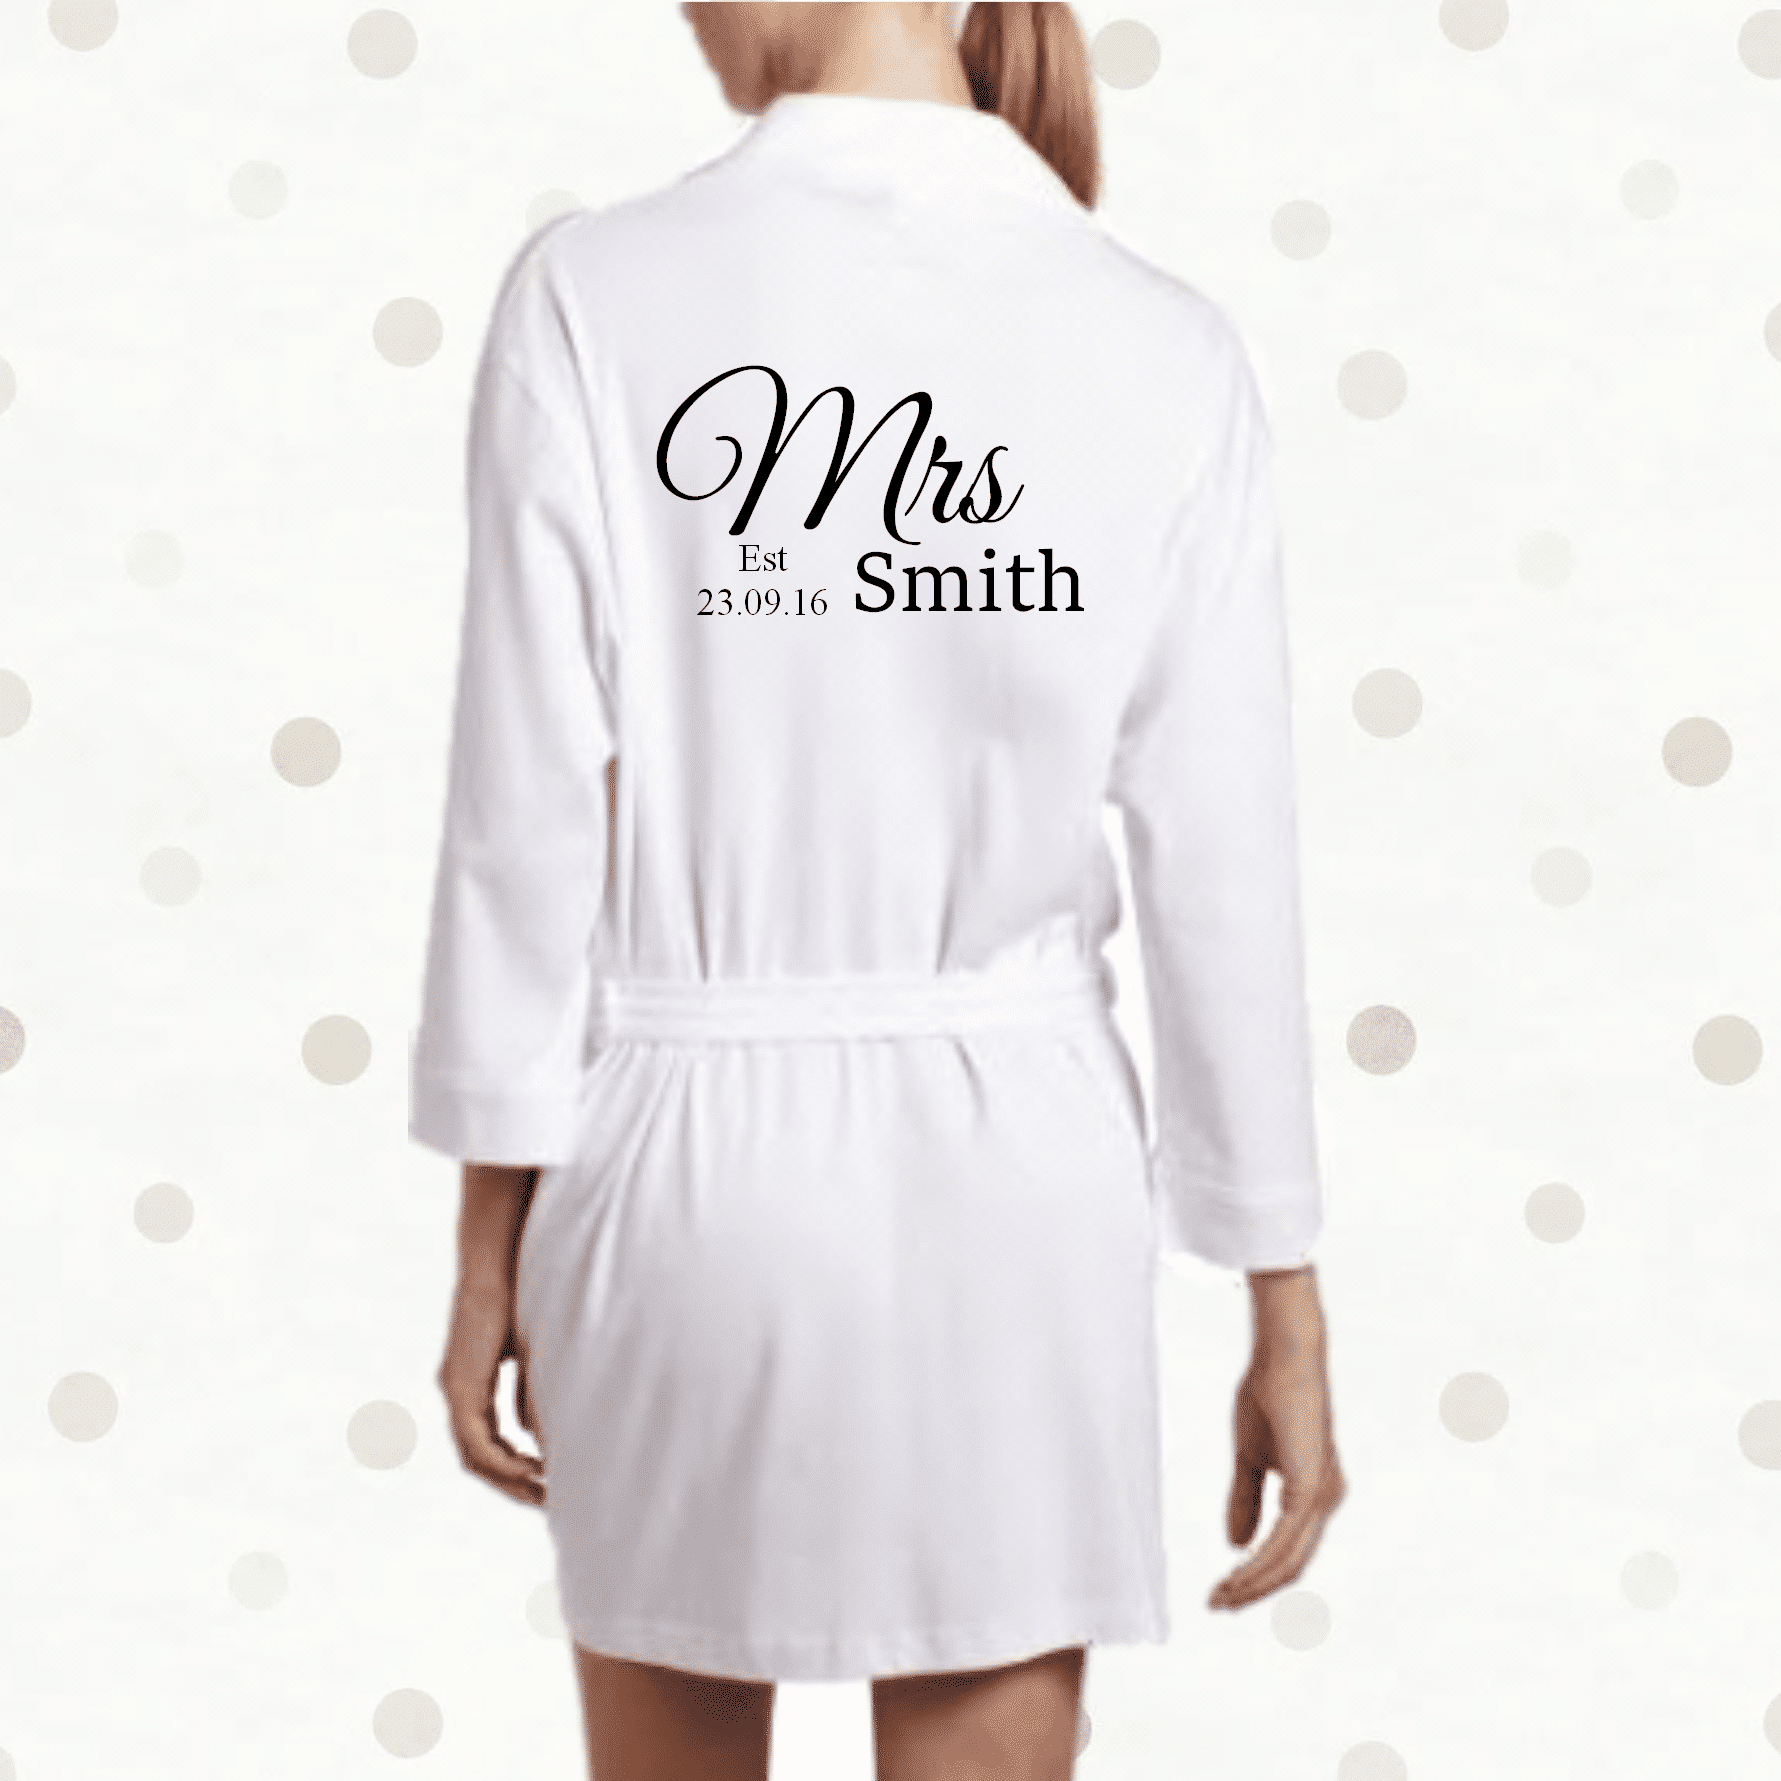 PERSONALISED LUXURY COTTON WEDDING ROBE DRESSING GOWN BRIDE BRIDAL SLIPPERS GIFT